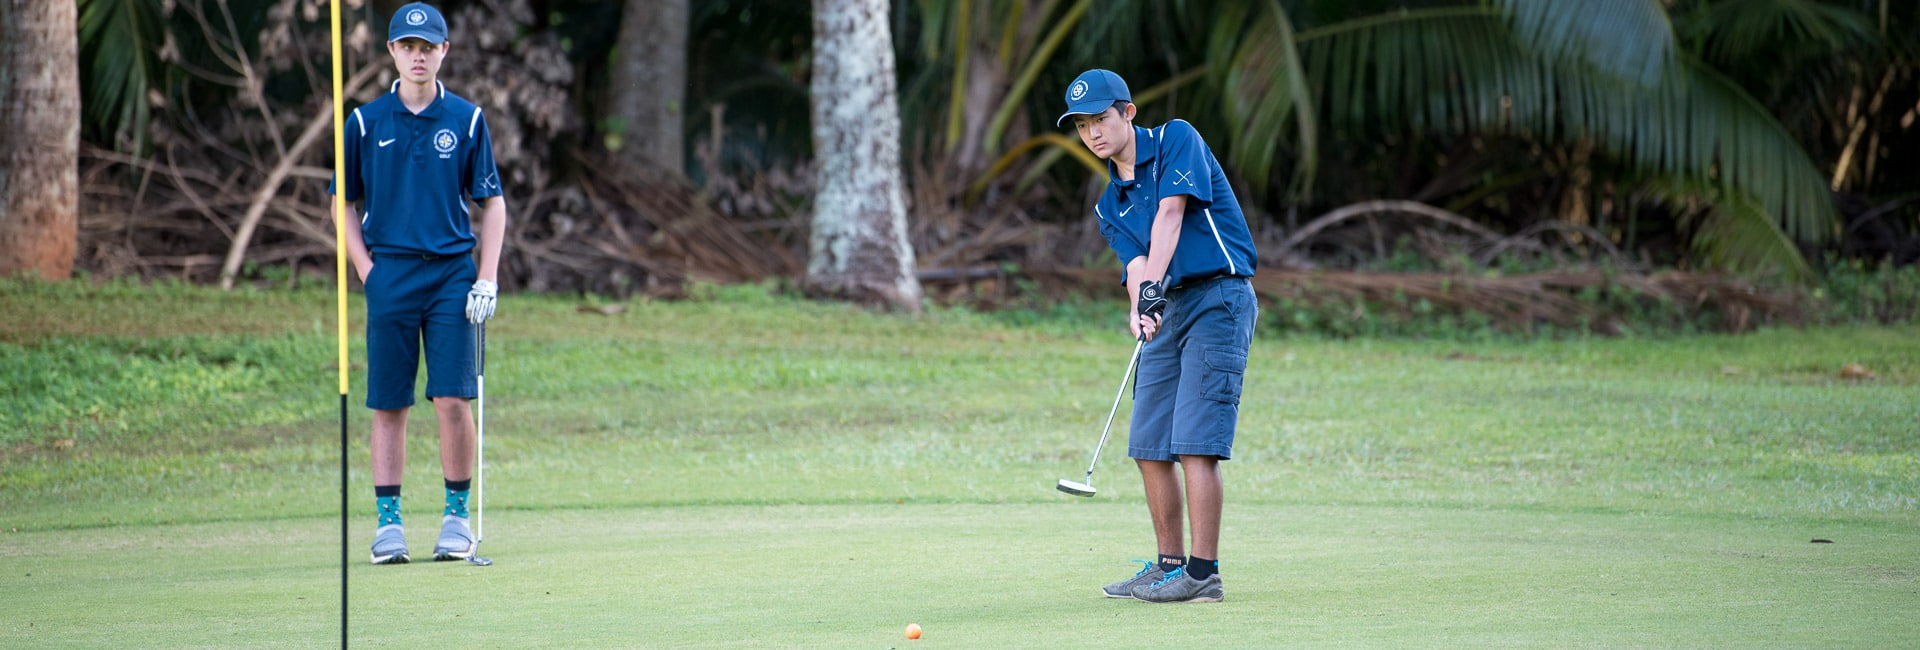 Intermediate boy golfer putting